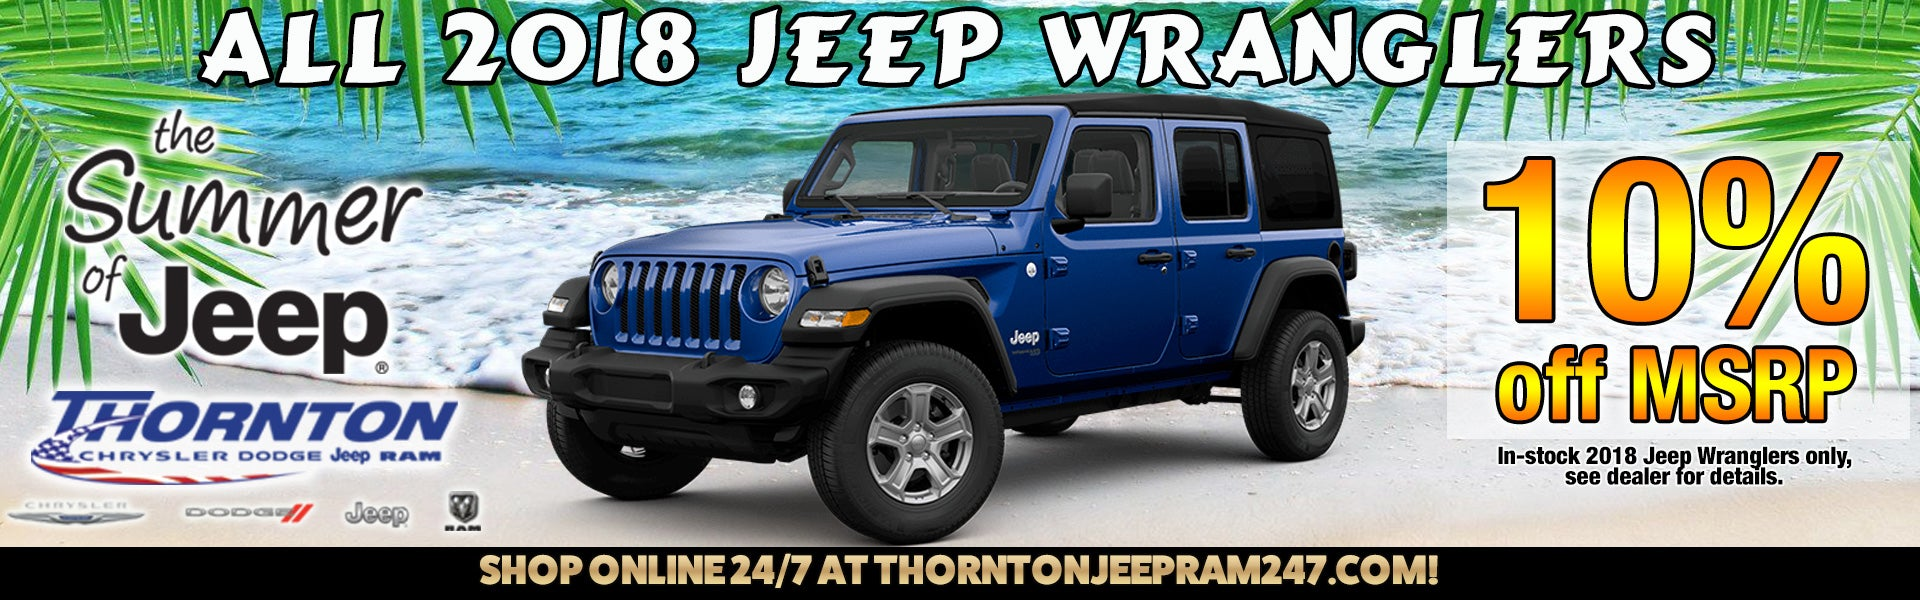 10% msrp all 2018 jeep wranglers thornton cdjr